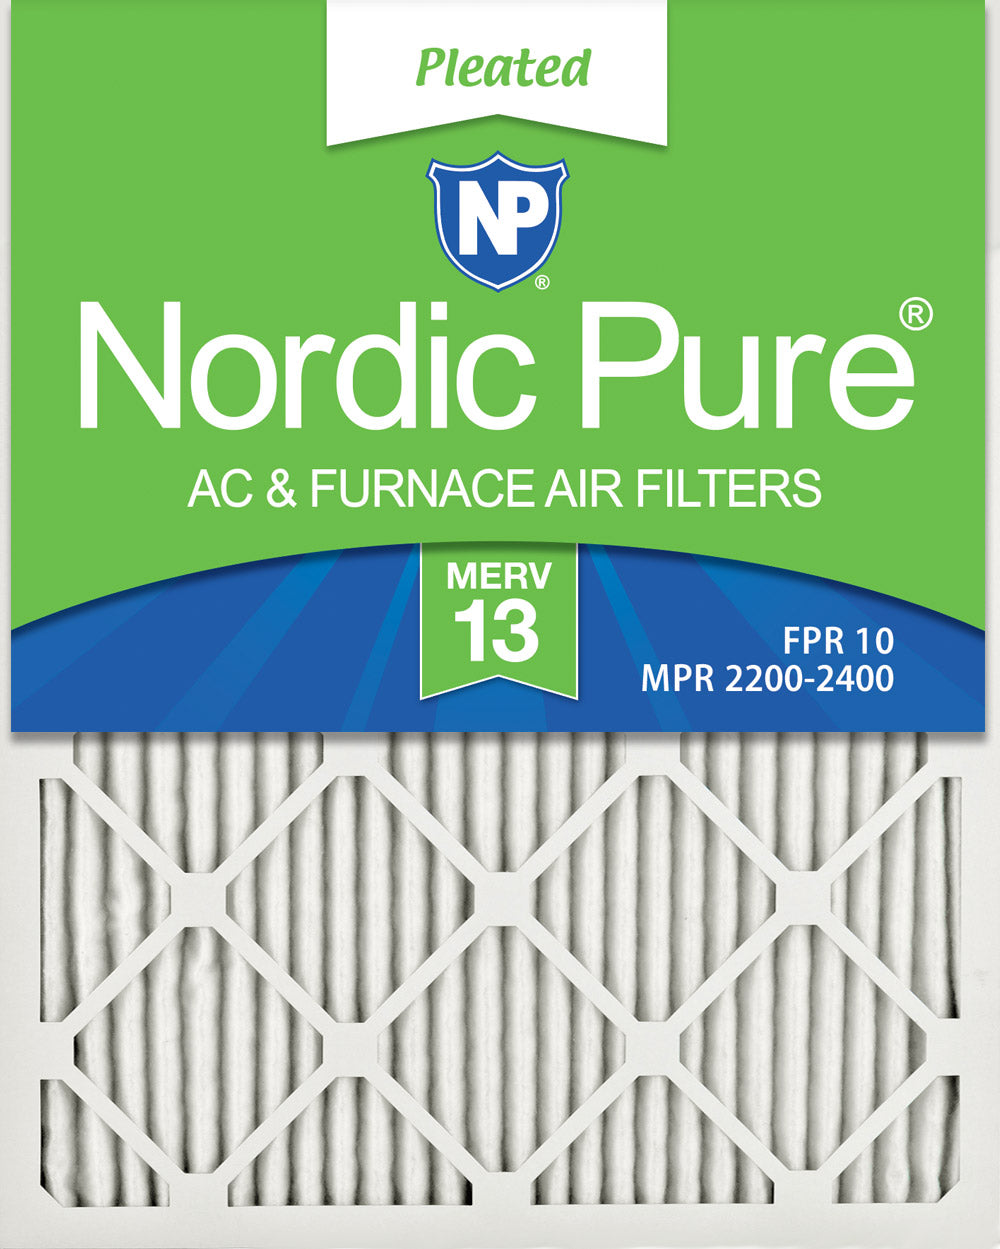 20x25x1 Pleated MERV 13 Air Filters 6 Pack